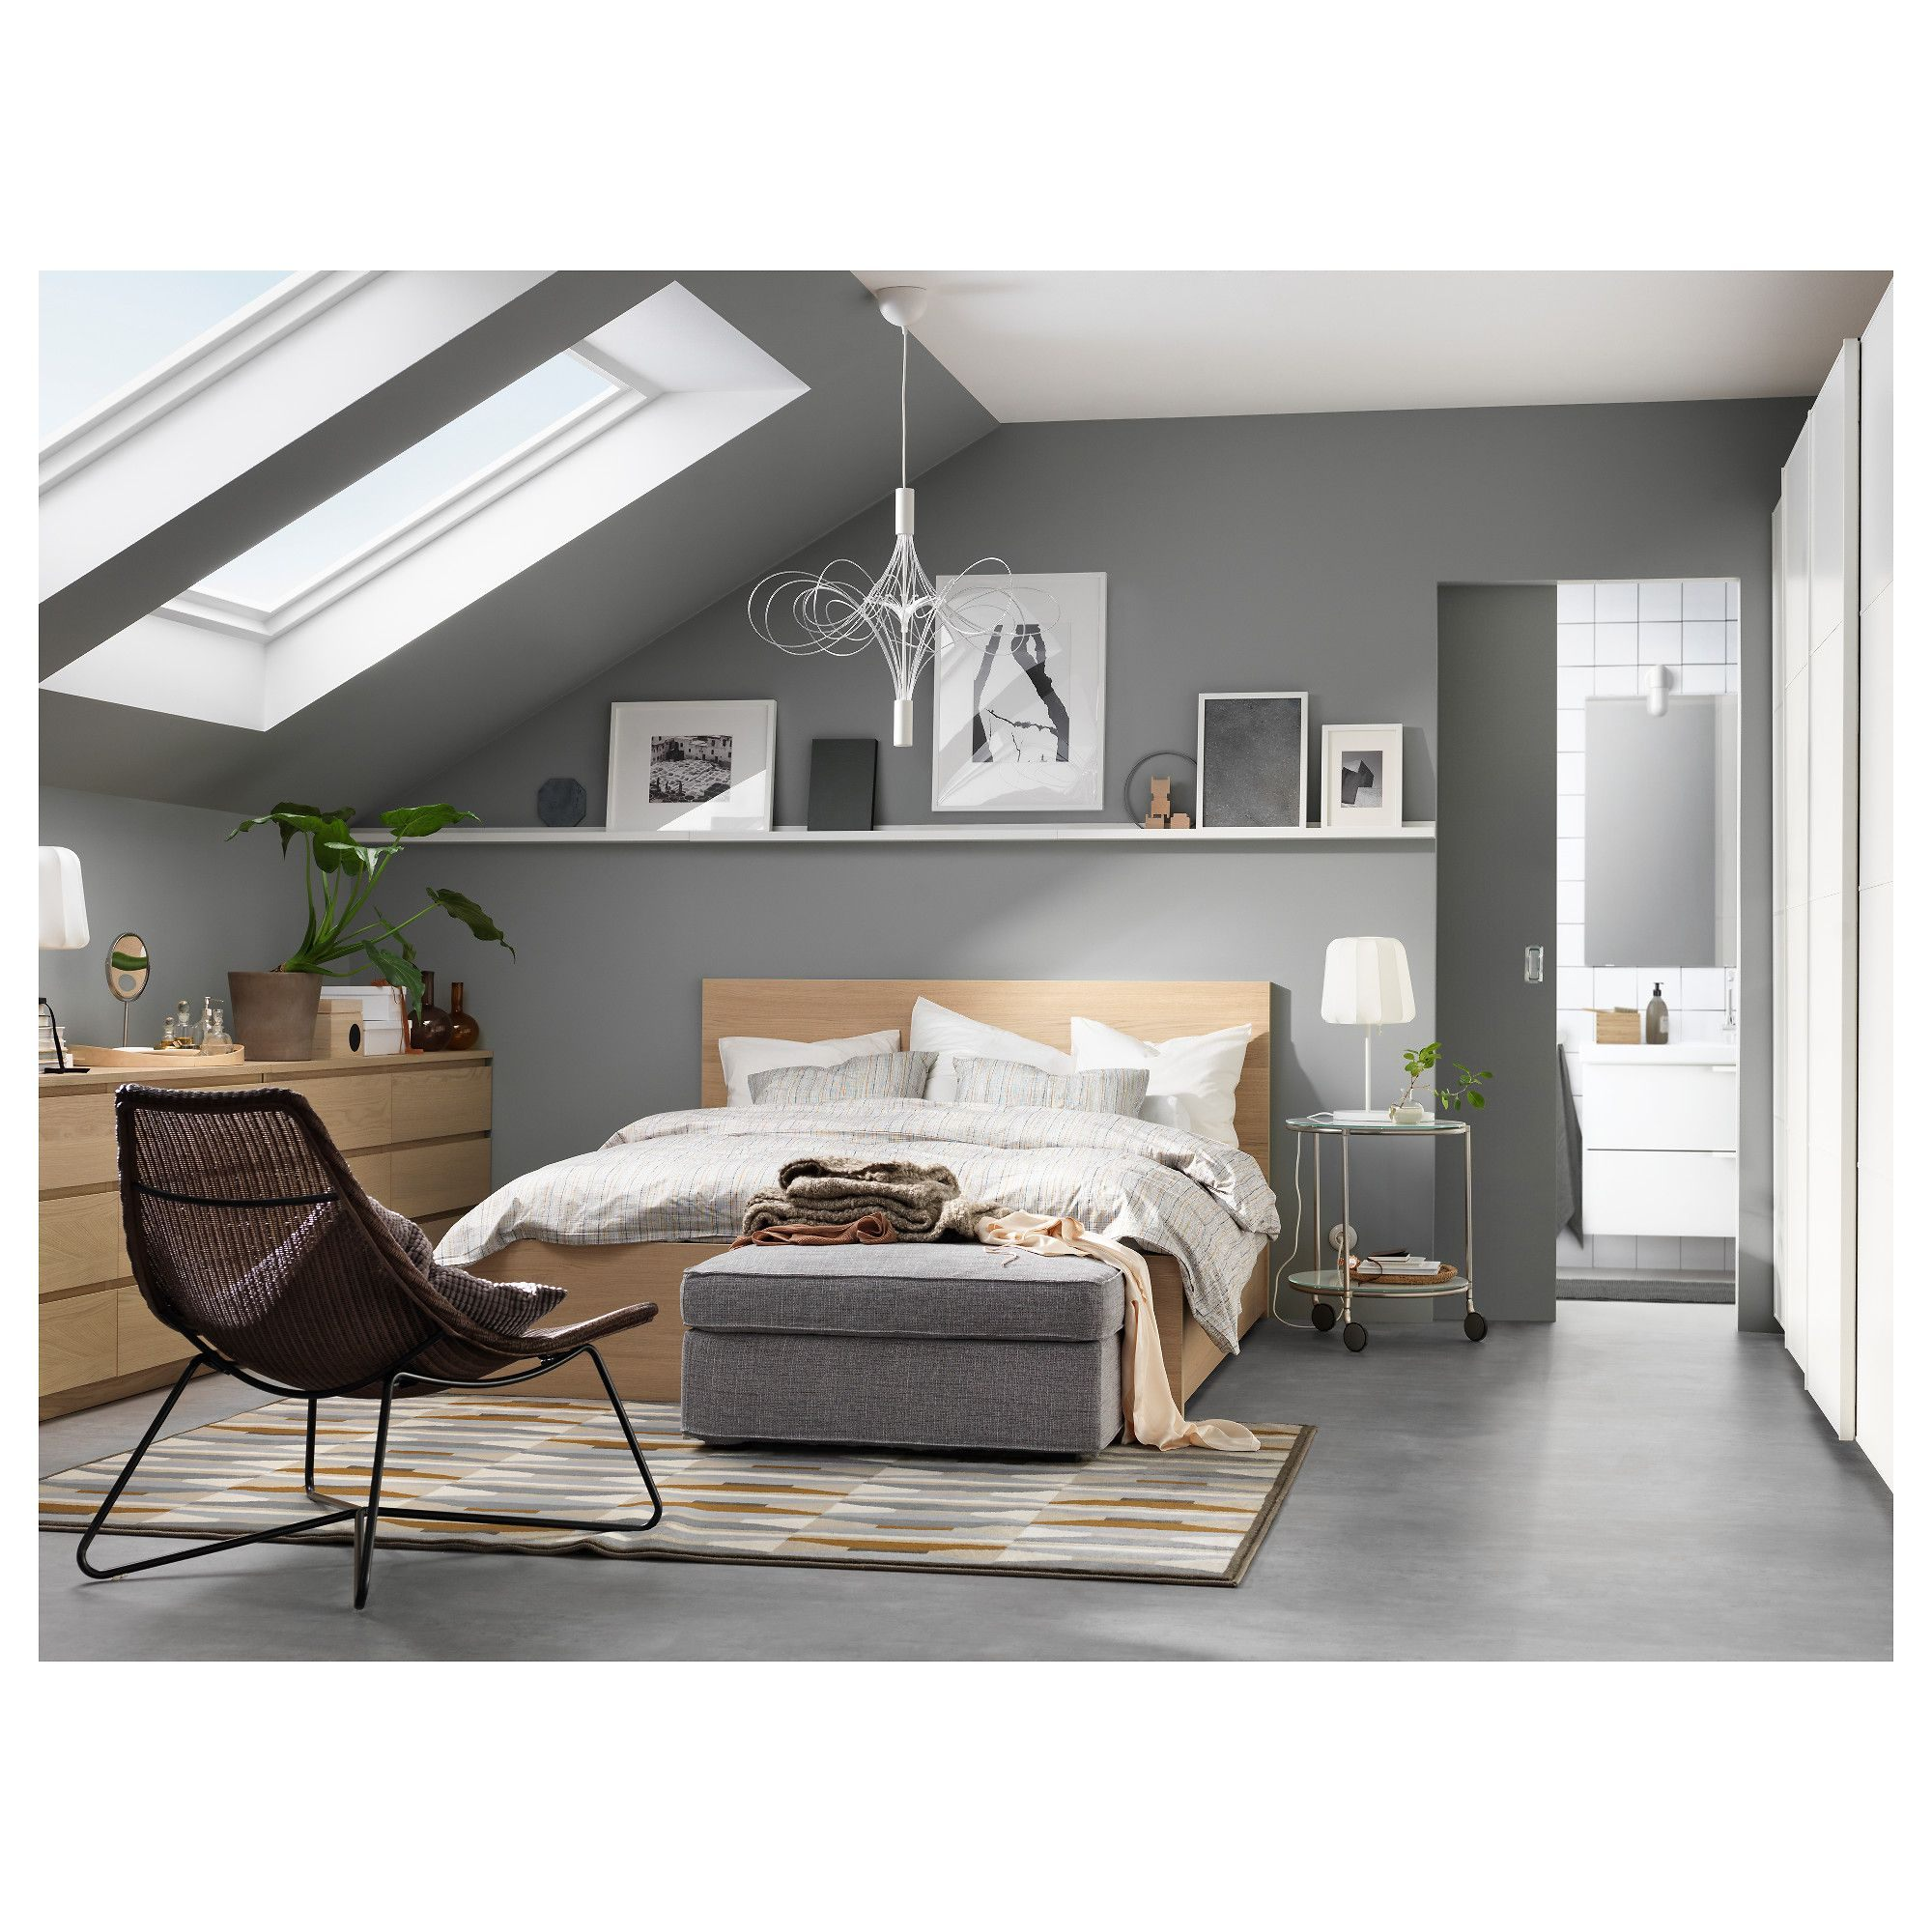 Lit Malm Ikea 90 Magnifique Ikea Malm High Bed Frame 2 Storage Boxes Queen Luröy the 2